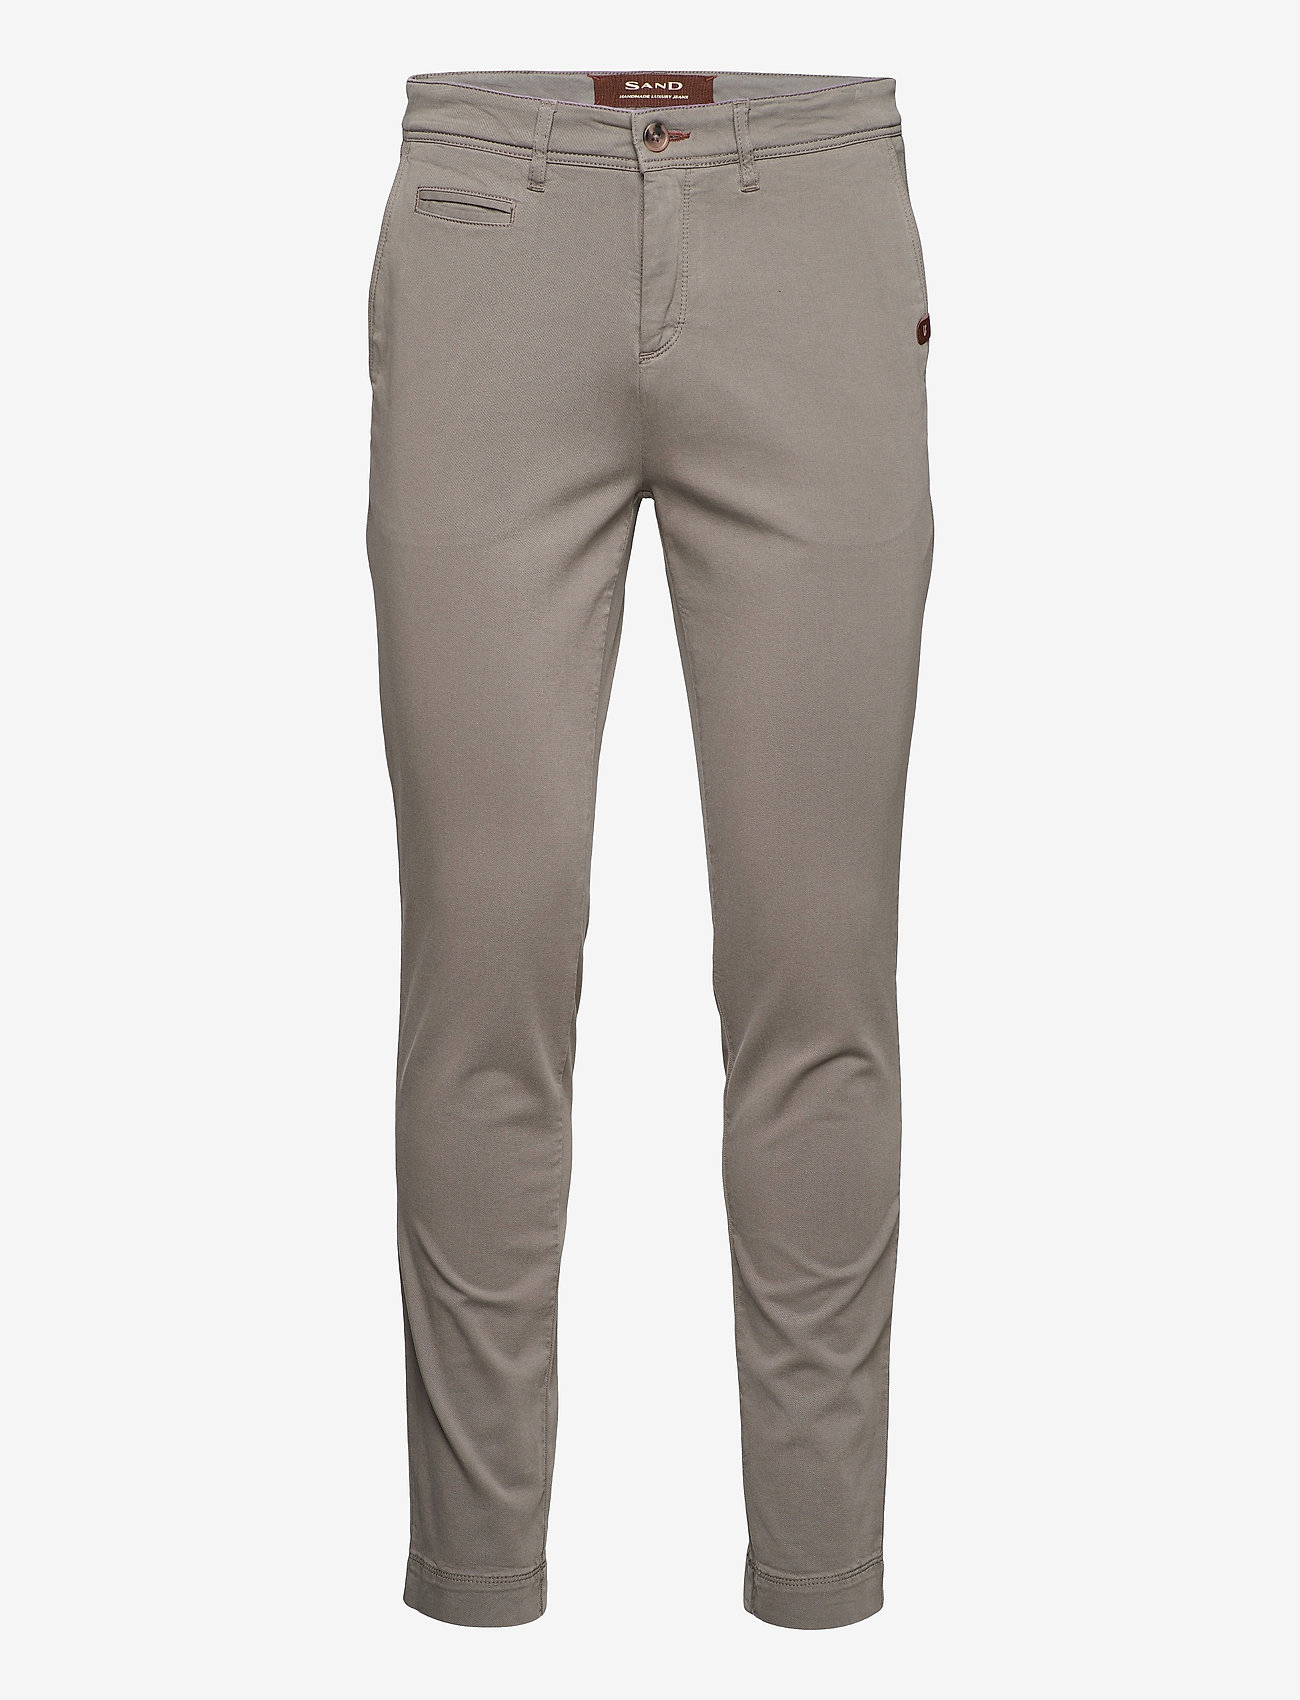 SAND - Cashmere Touch - Dolan Slim - regular jeans - dark army - 0